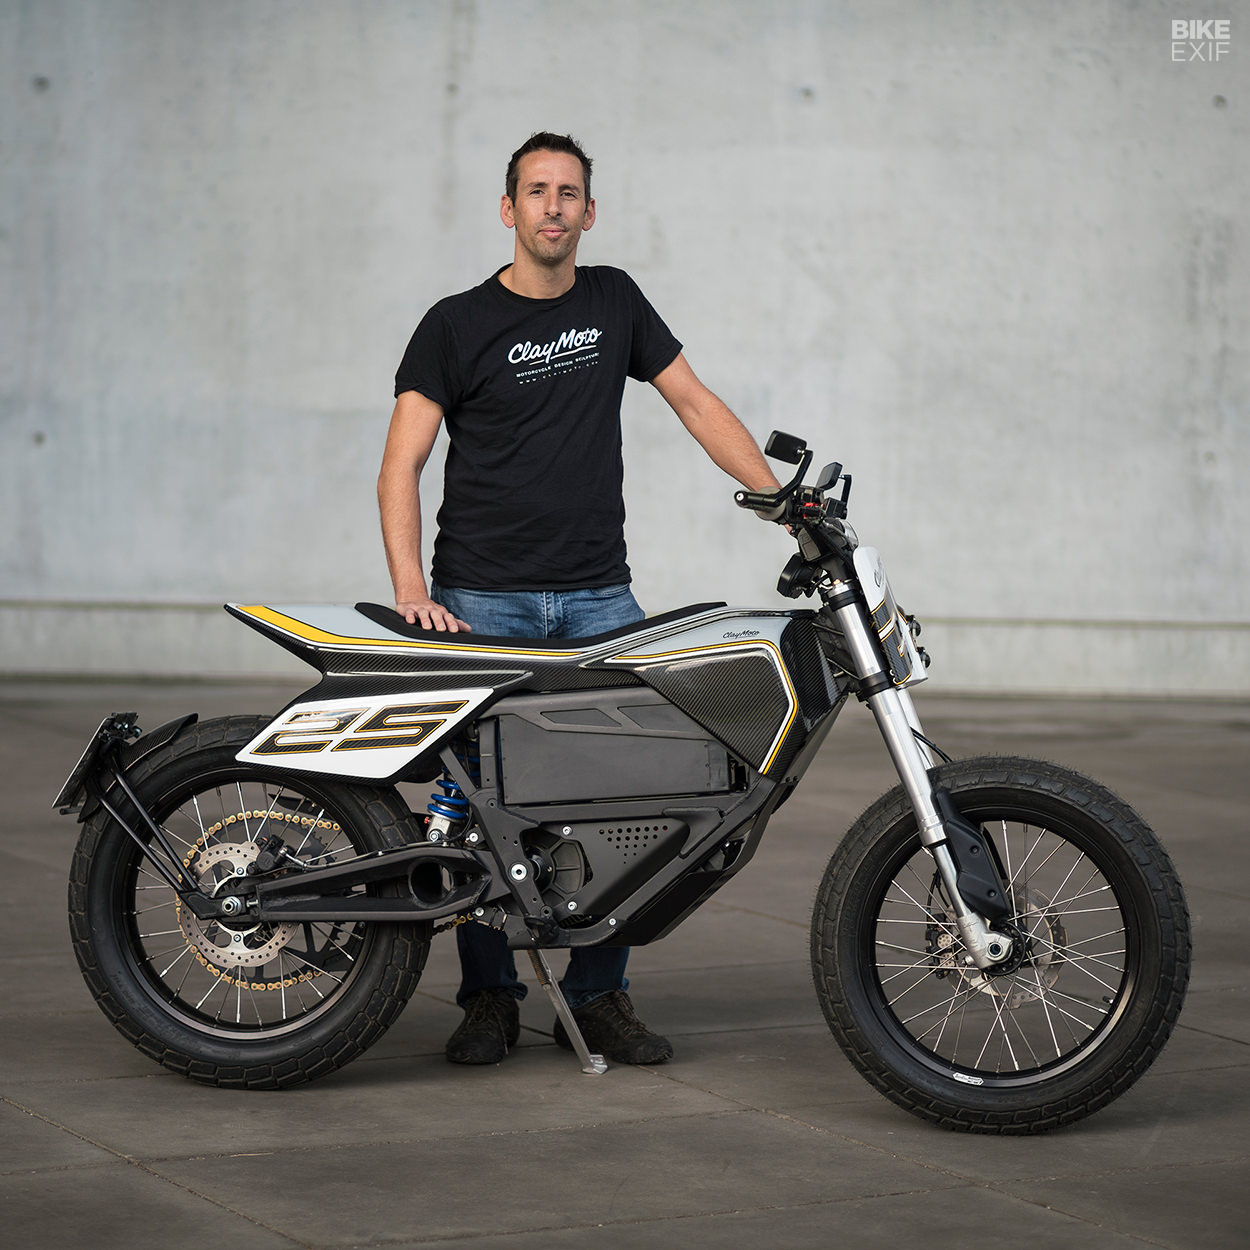 Custom Zero FX electric flat tracker designed by automotive sculptor Nick Graveley